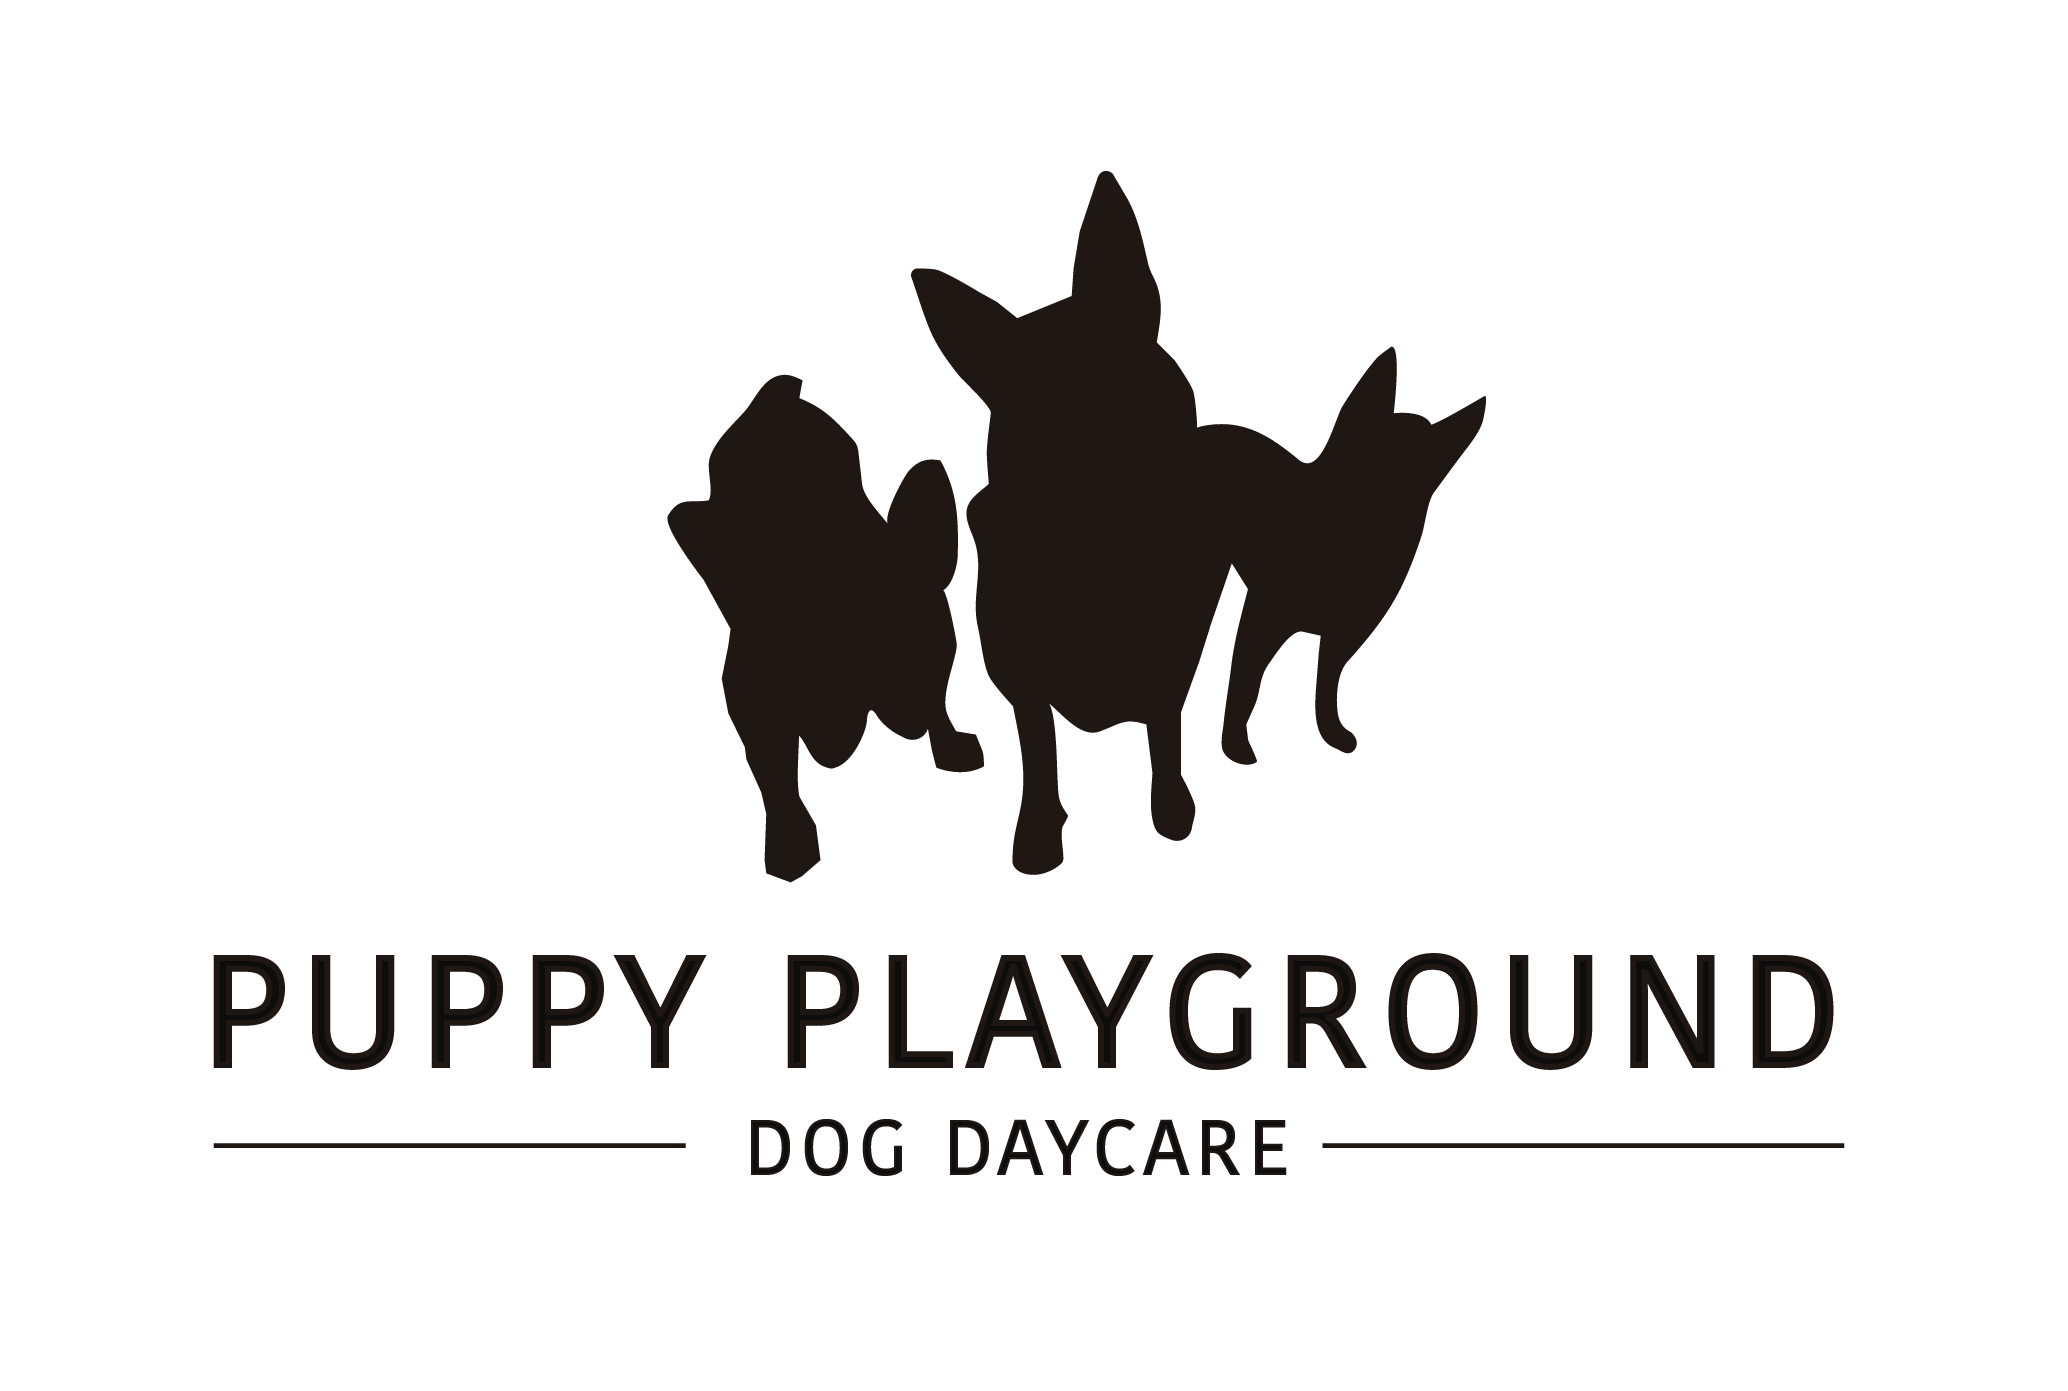 Puppy Playground Dog Daycare – Puppy Playground